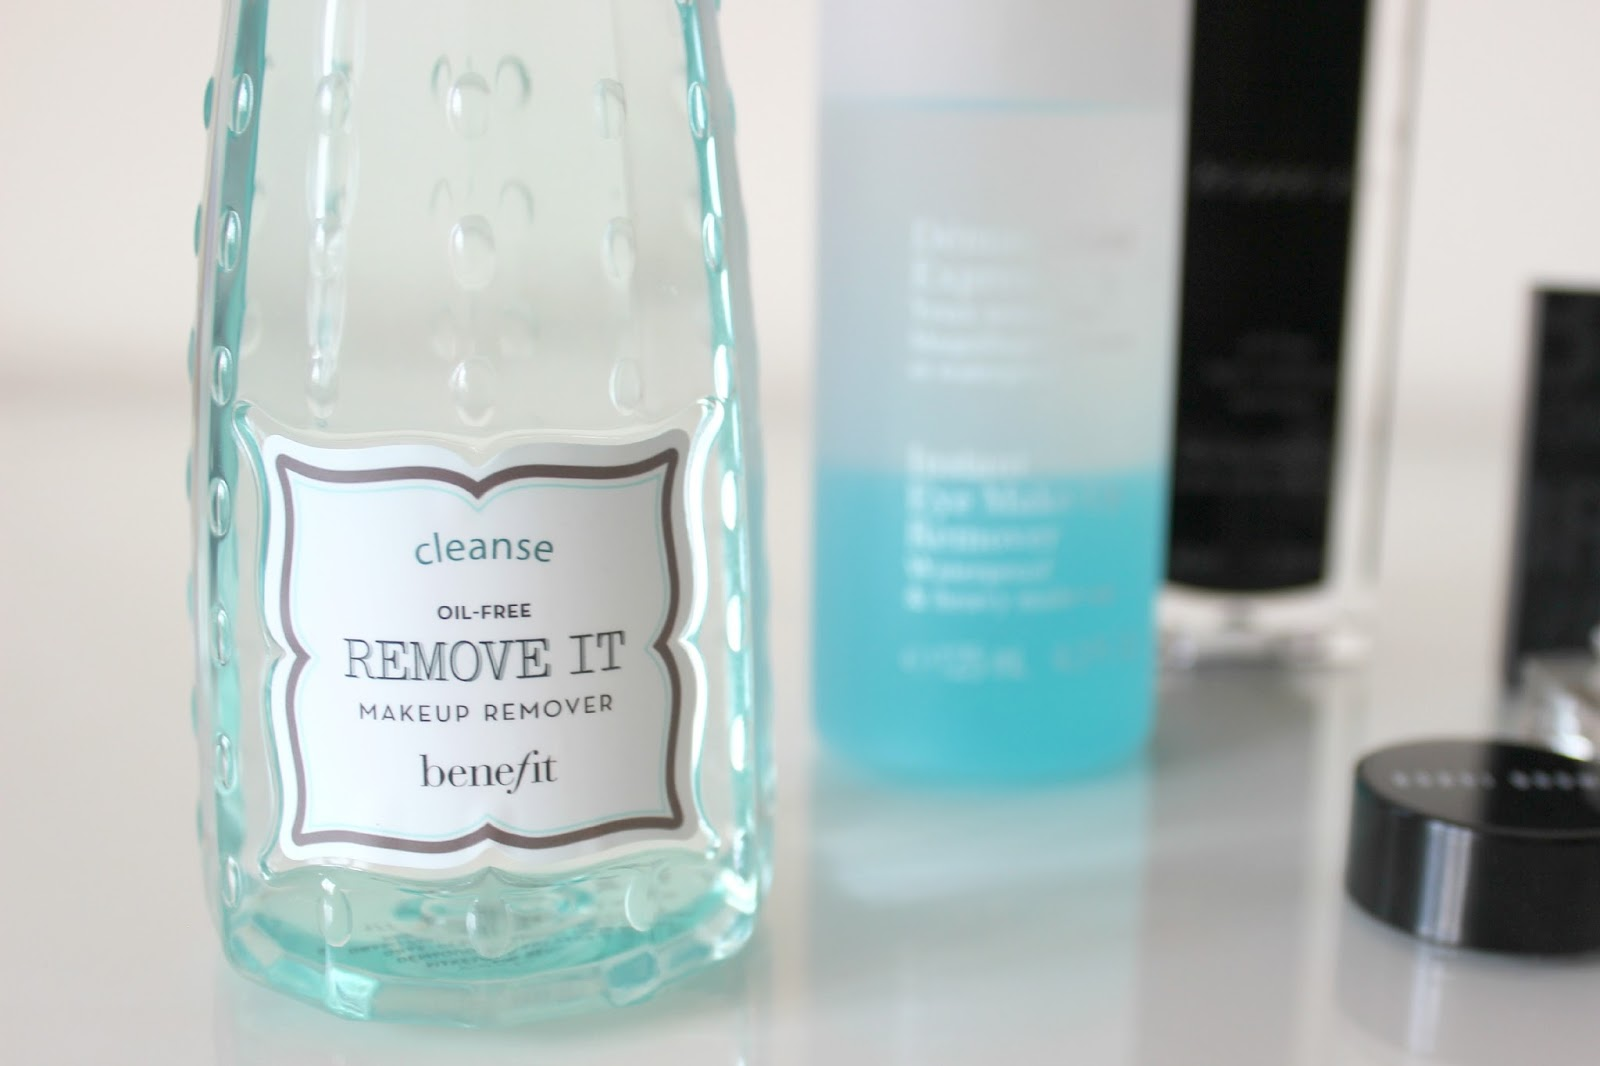 A picture of Benefit Oil-Free Remove It Makeup Remover